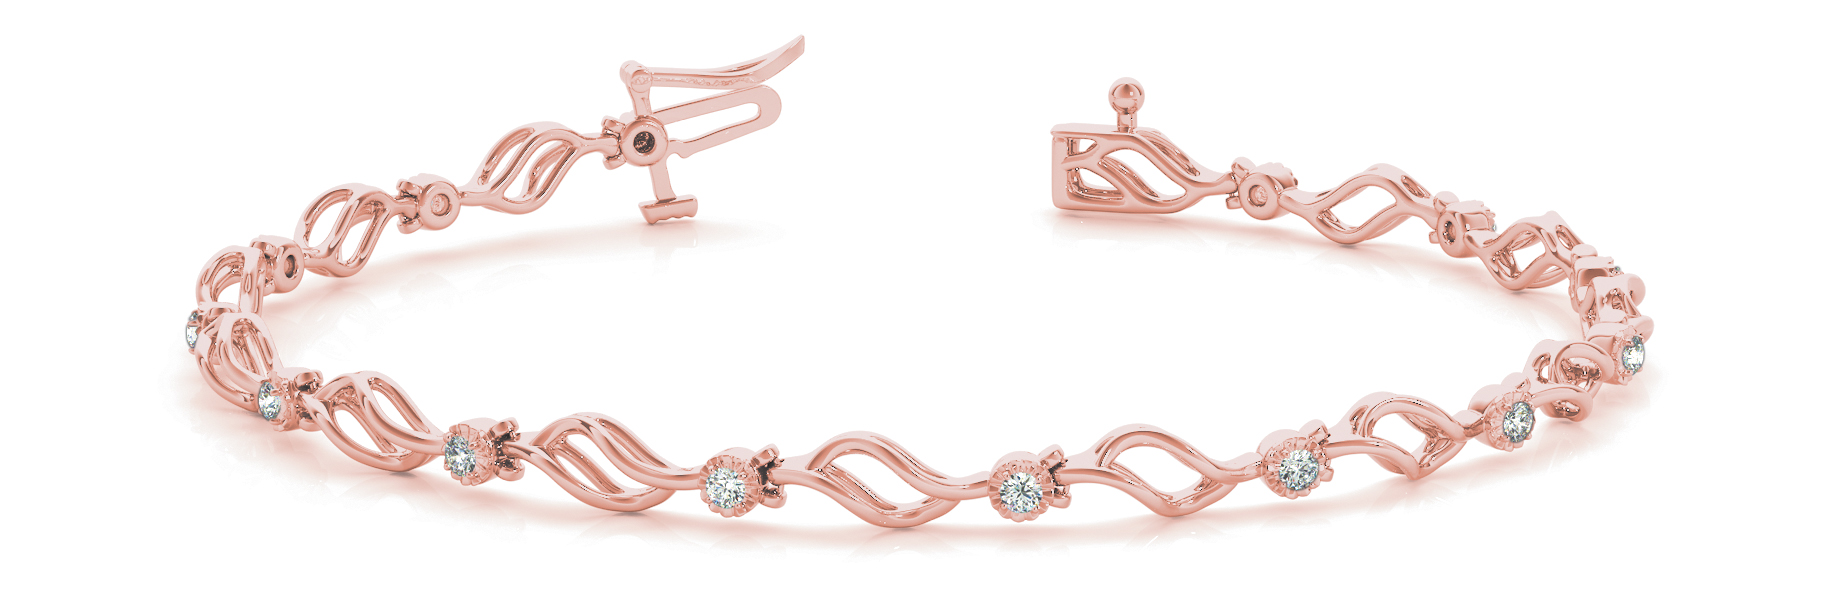 Flowing Leaves Round Diamond 0.21 Carat Rose Gold Bracelet